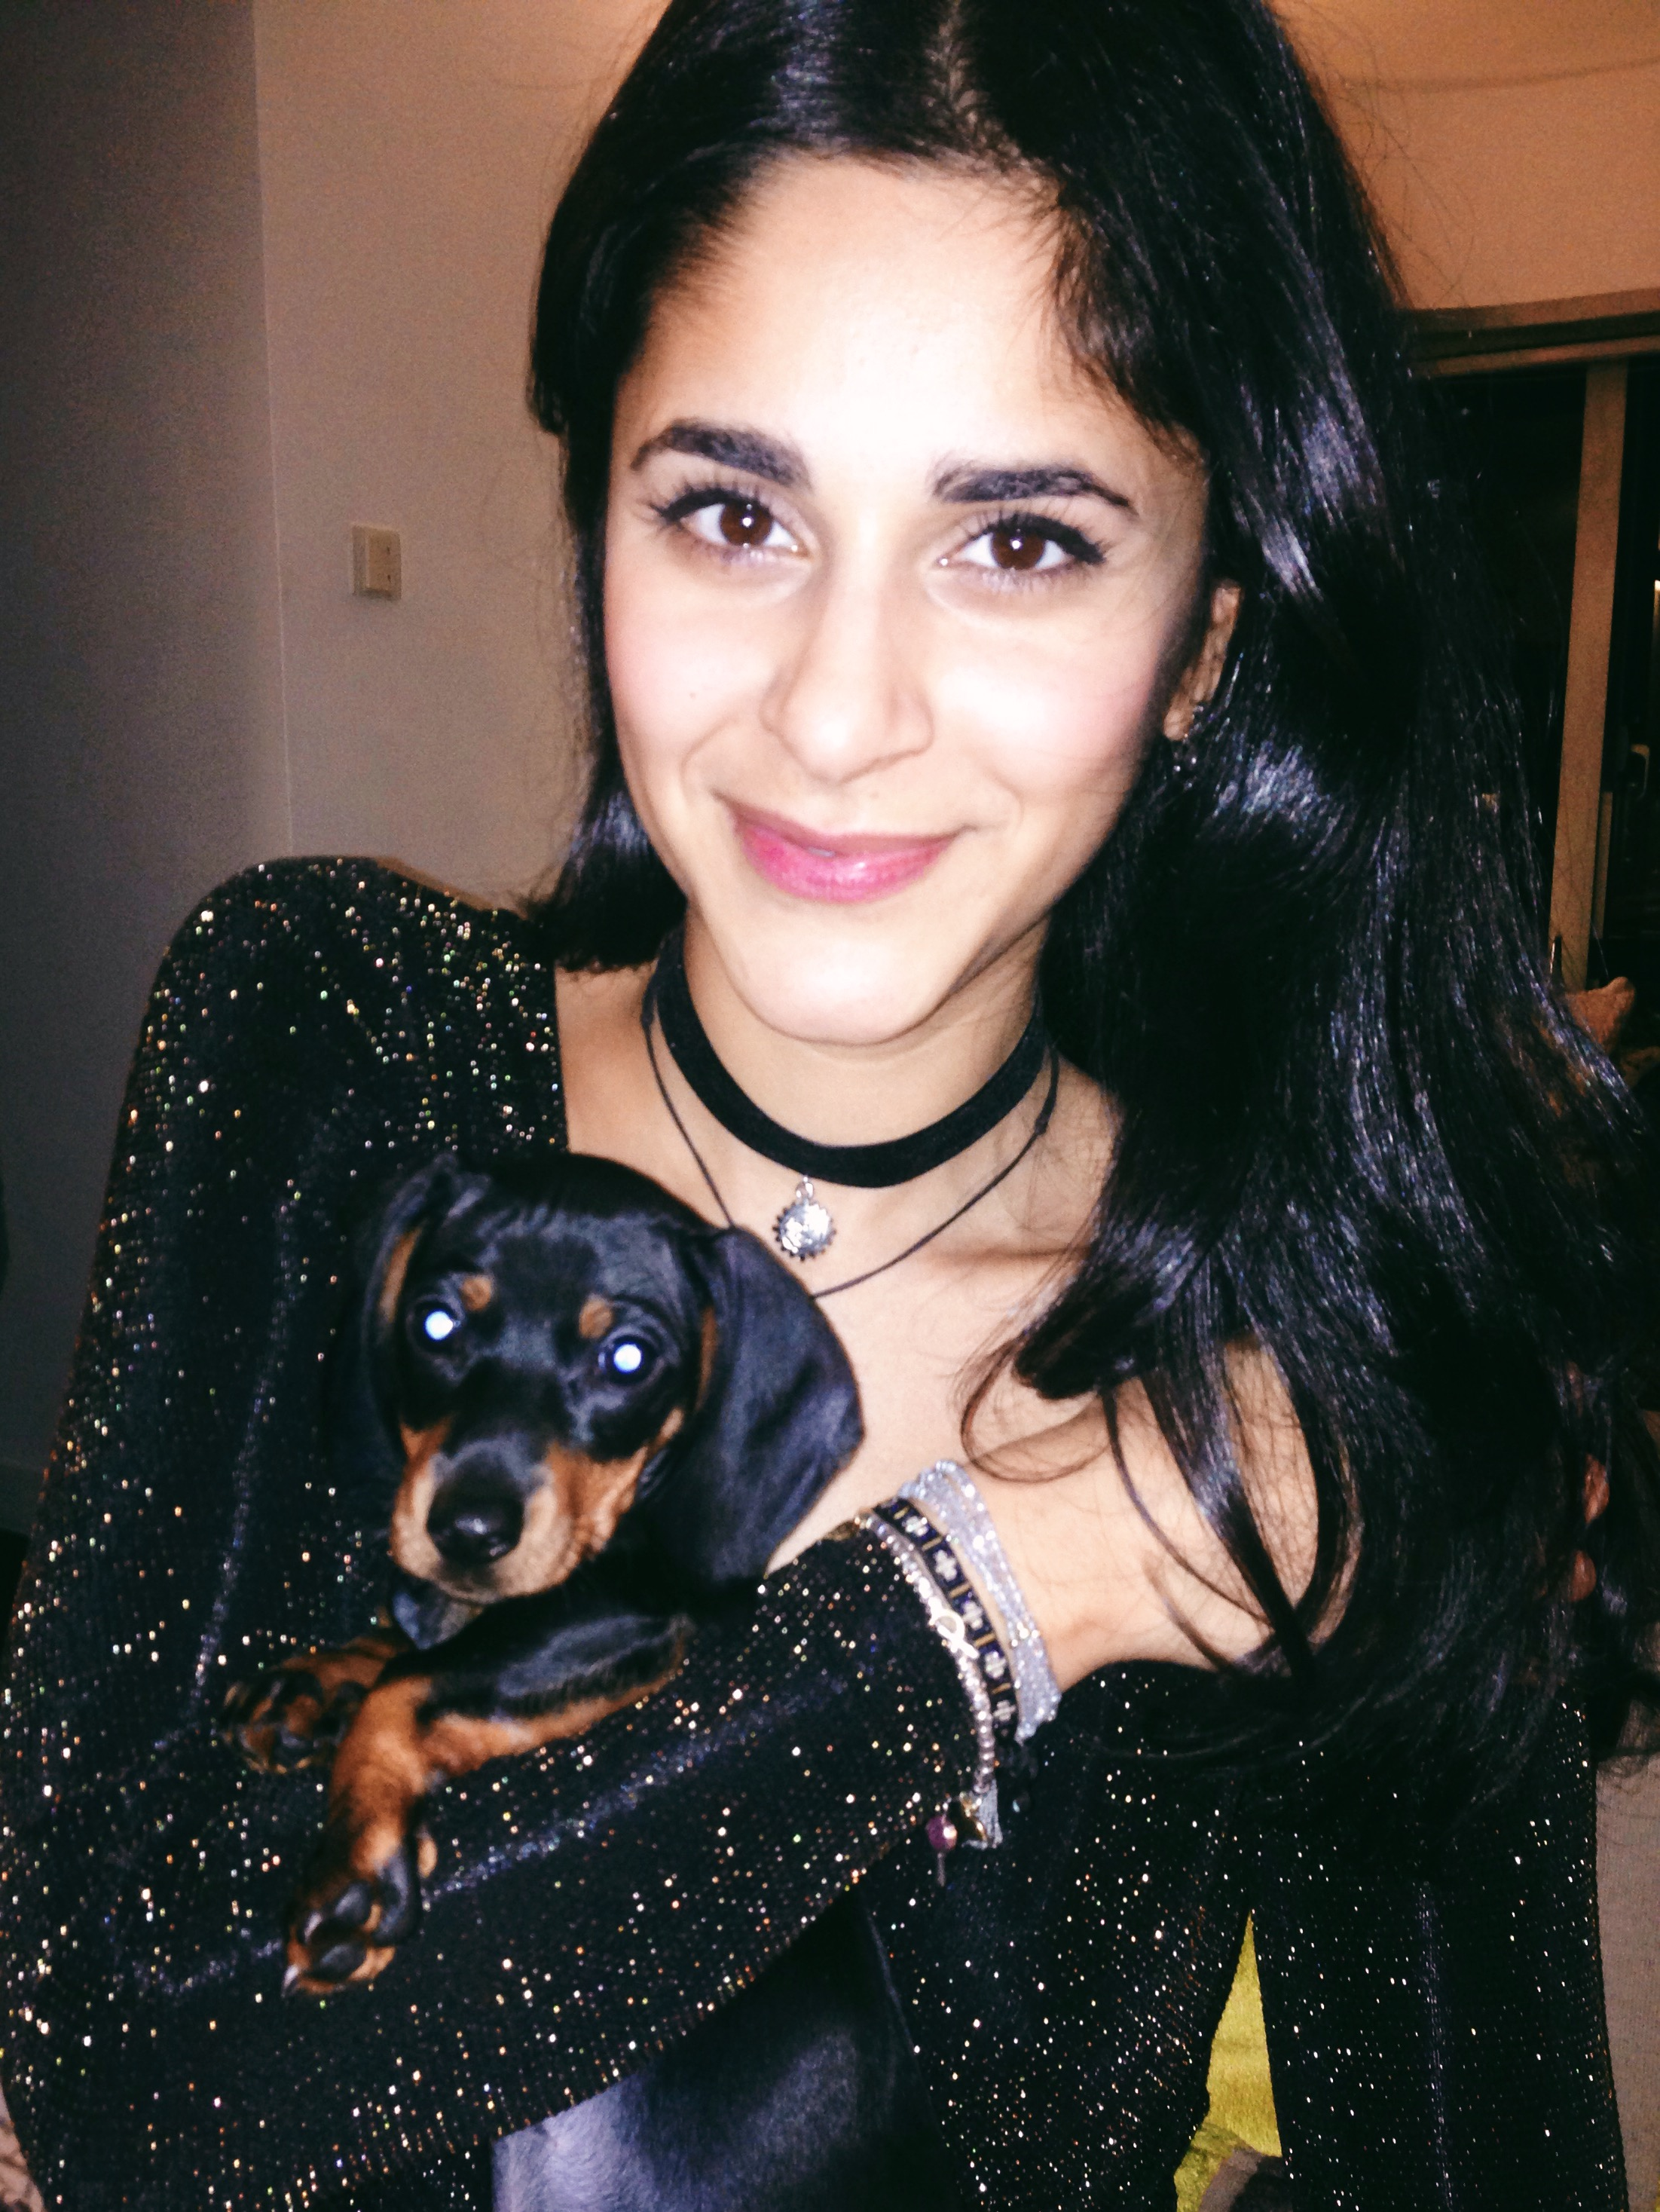 Happy new year! here I am with a puppy.